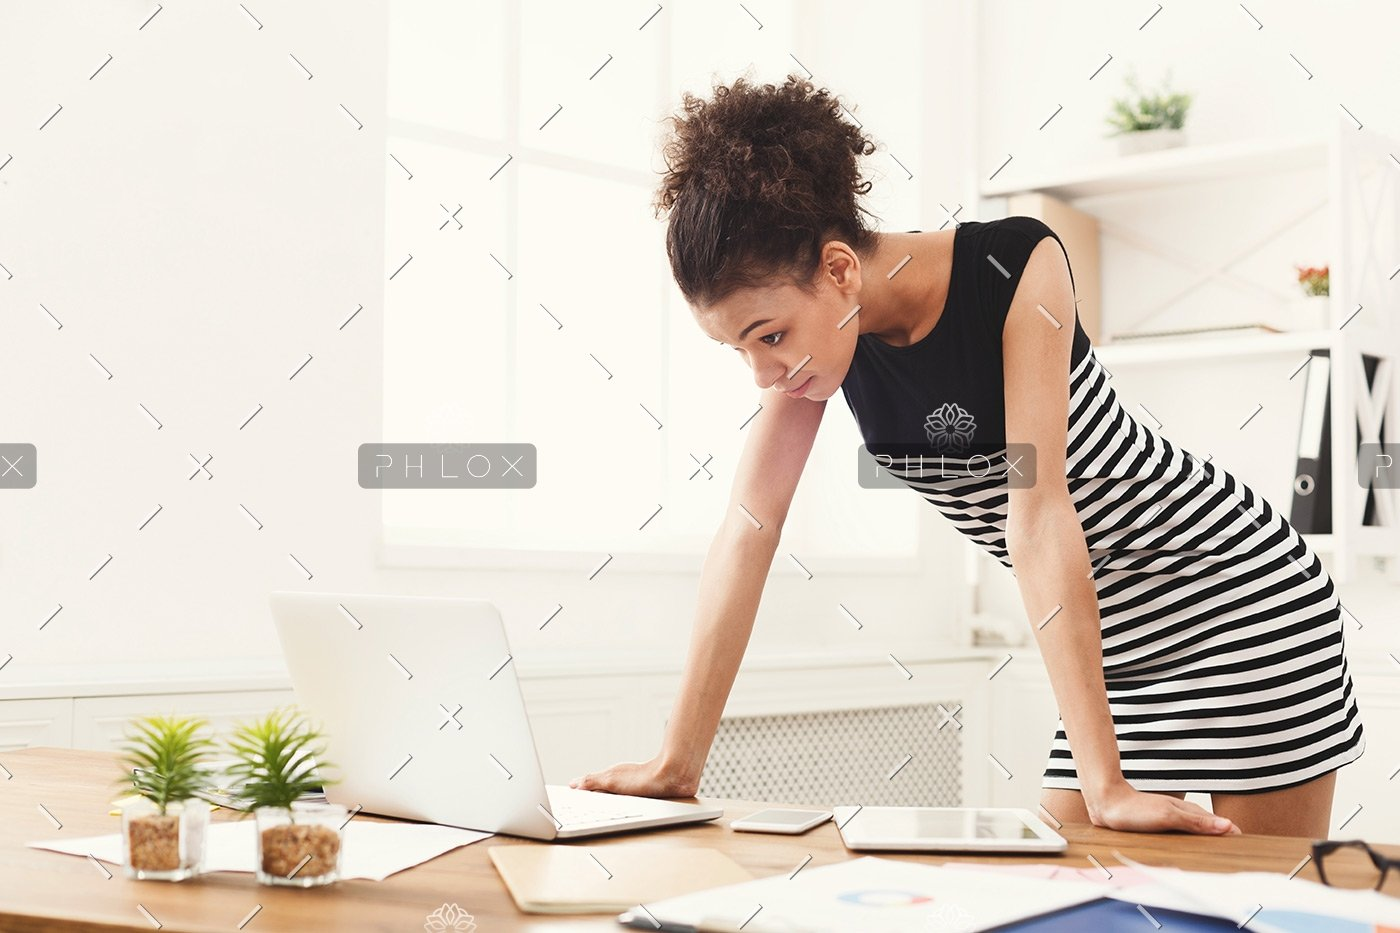 business-woman-working-on-laptop-at-office-PRFJKQJ